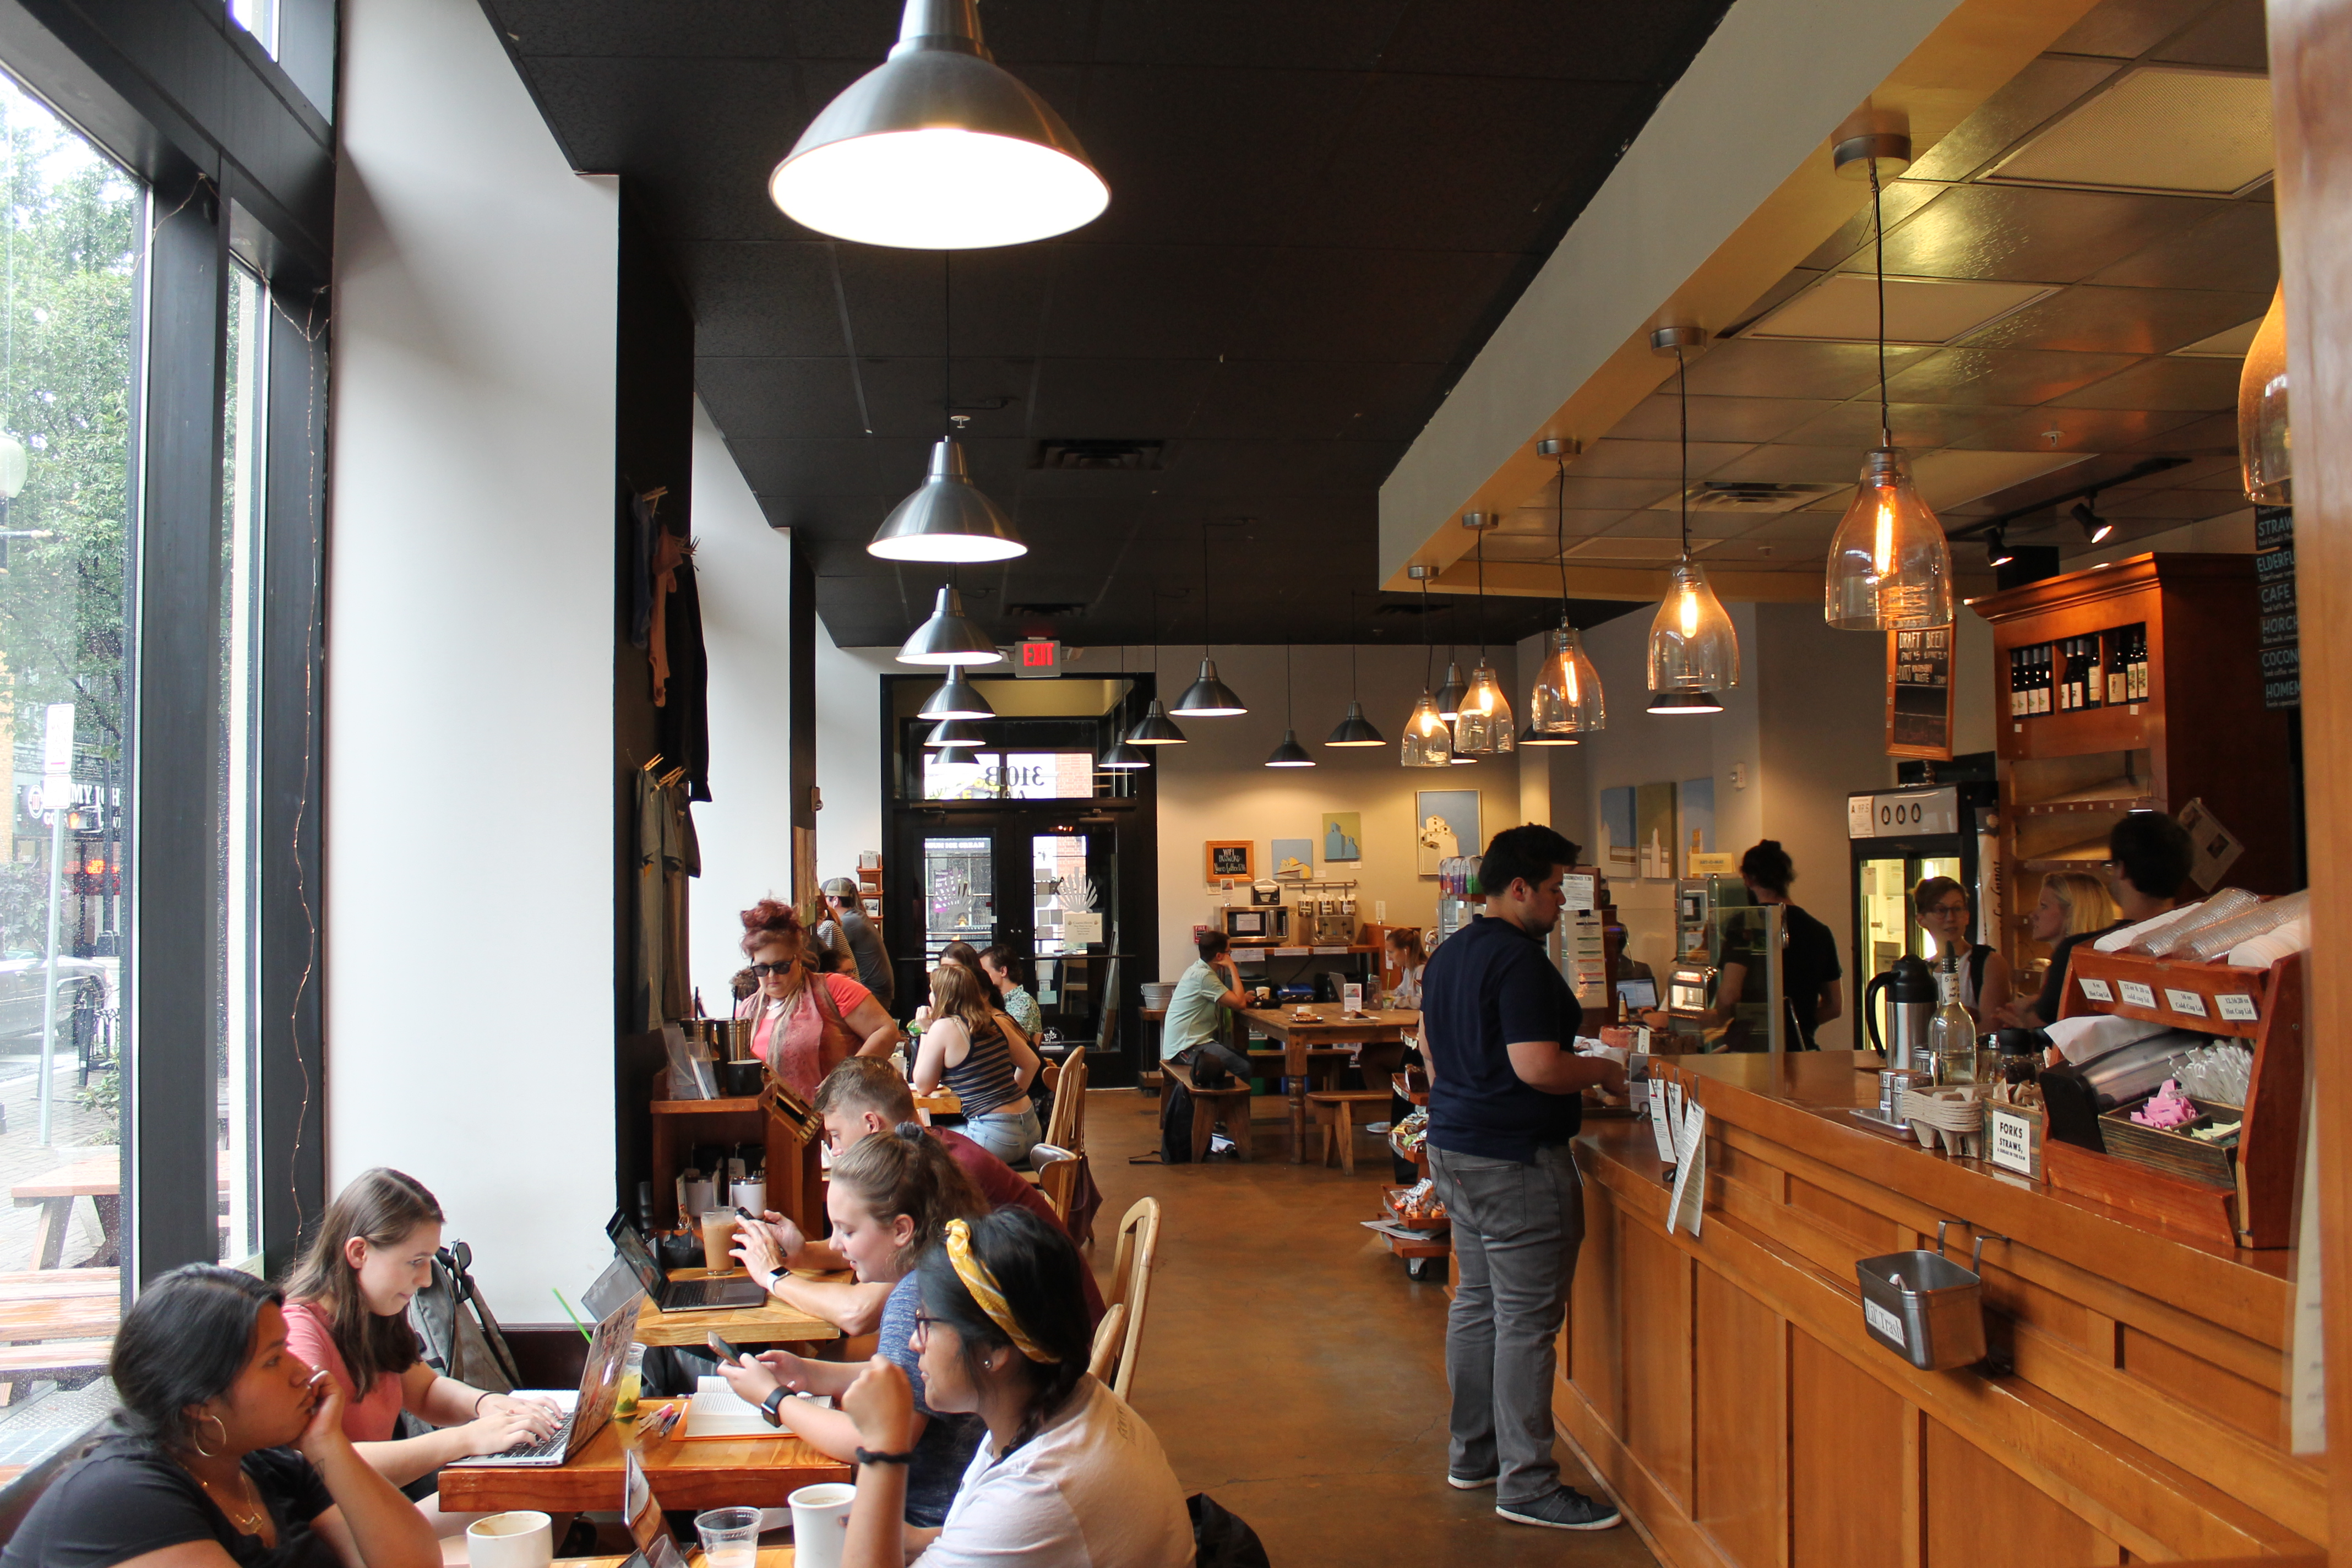 Interior of camino bakery, people sitting by windows and ordering at counter